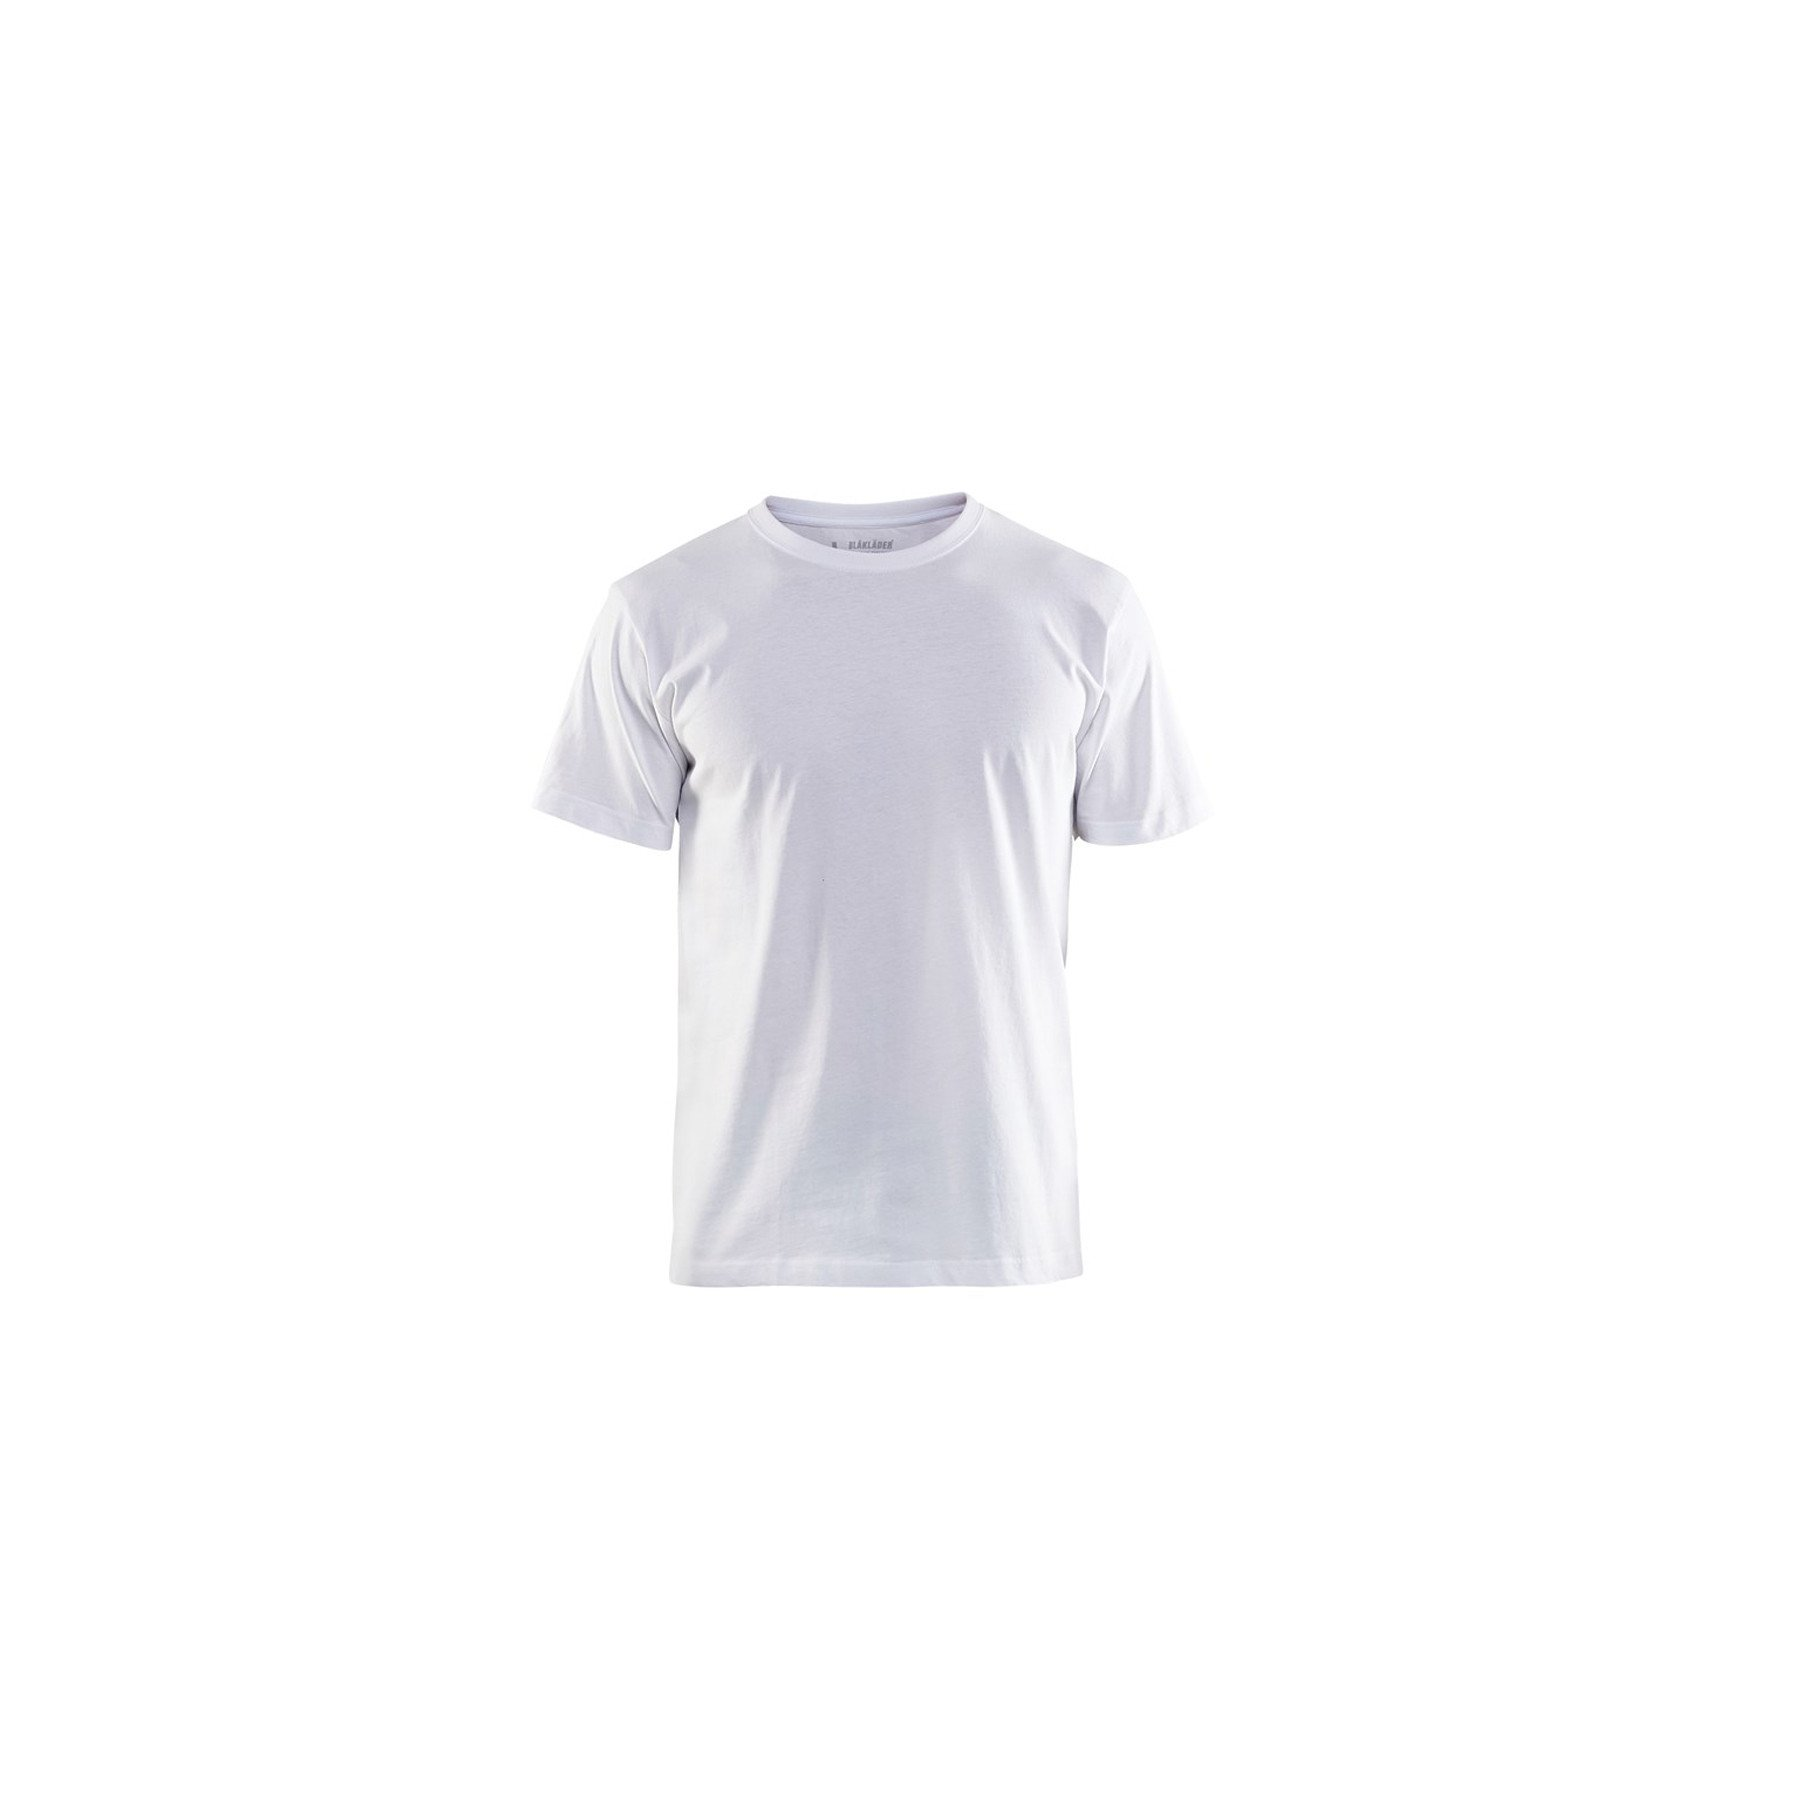 T-shirt Blaklader col rond Homme 100% coton - Blanc